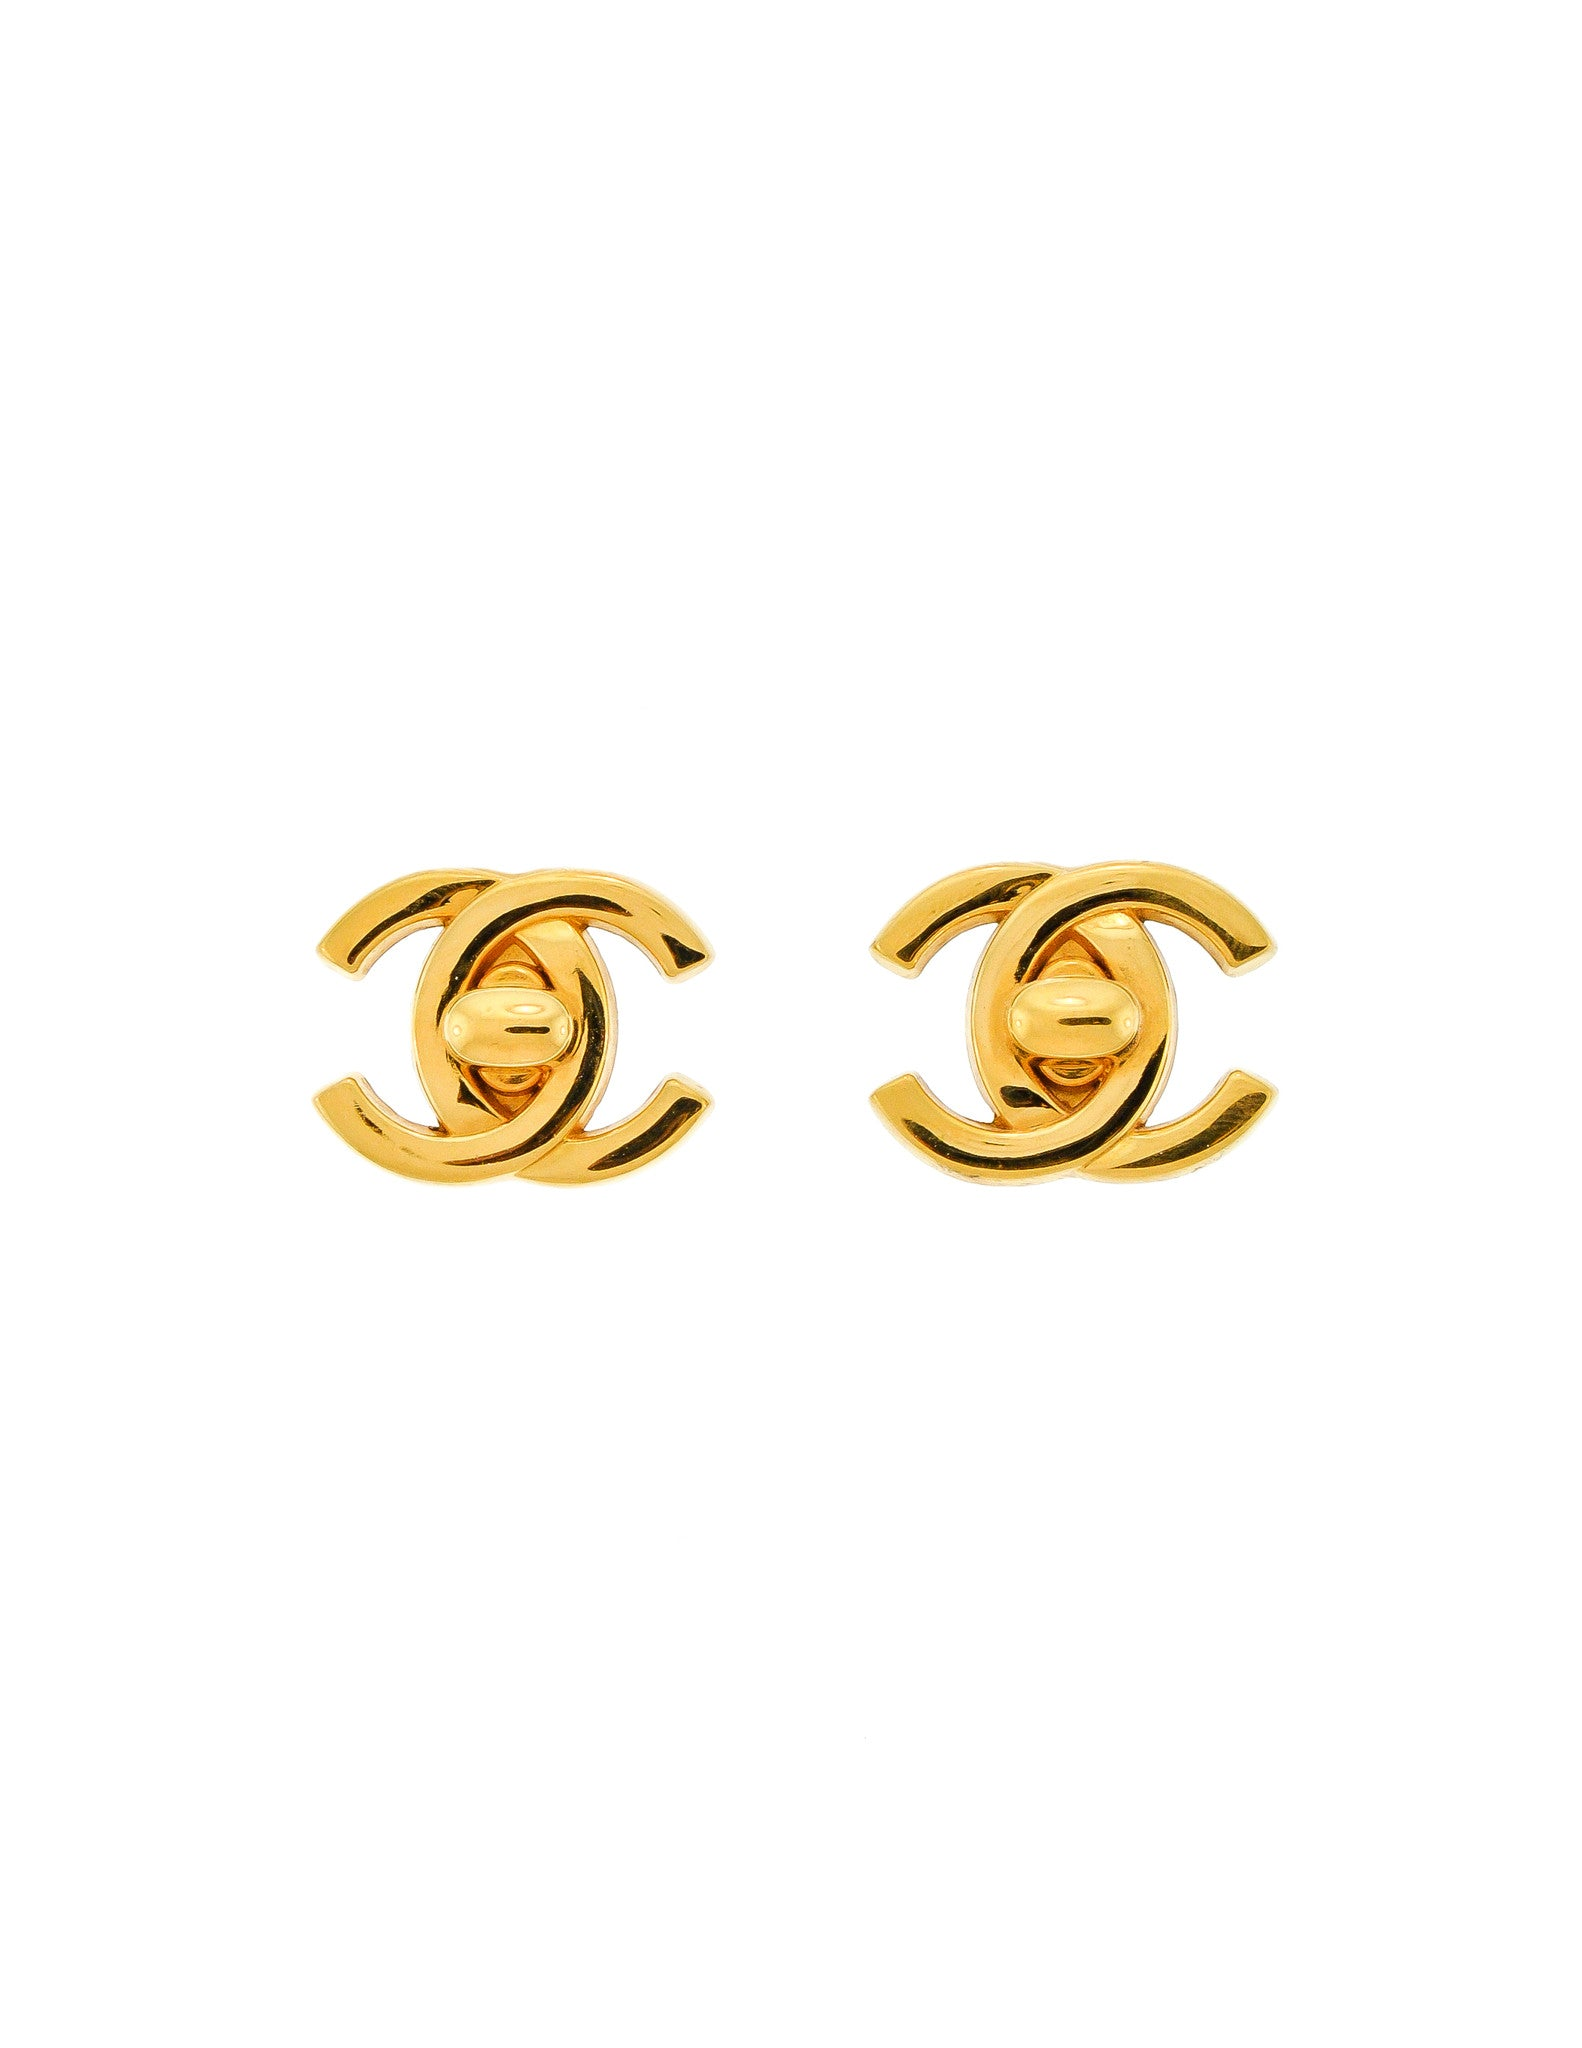 earrings design category both gold jewelry gf clasp shari product spiral fill